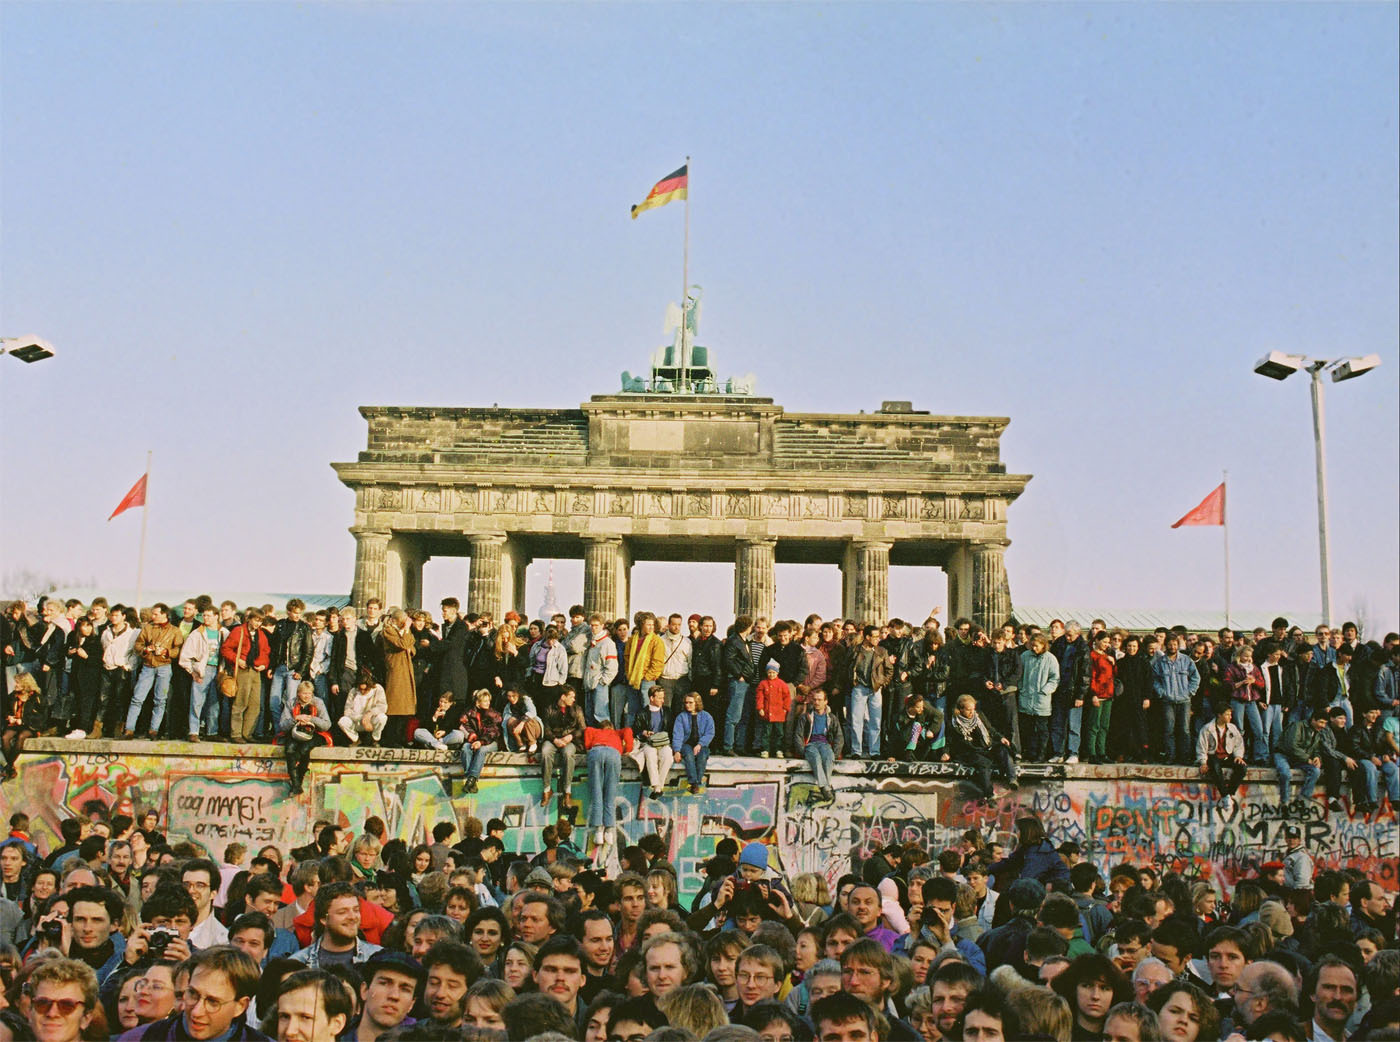 Twenty years ago, on November 9, 1989, jubilant crowds celebrated the opening of border crossings along the Berlin Wall. To find out more about the Berlin Wall, please visit www.Germany.info/withoutwalls. Copyright: Press and Information Office of the Federal Government of Germany. (PRNewsFoto/German Embassy Washington, DC)